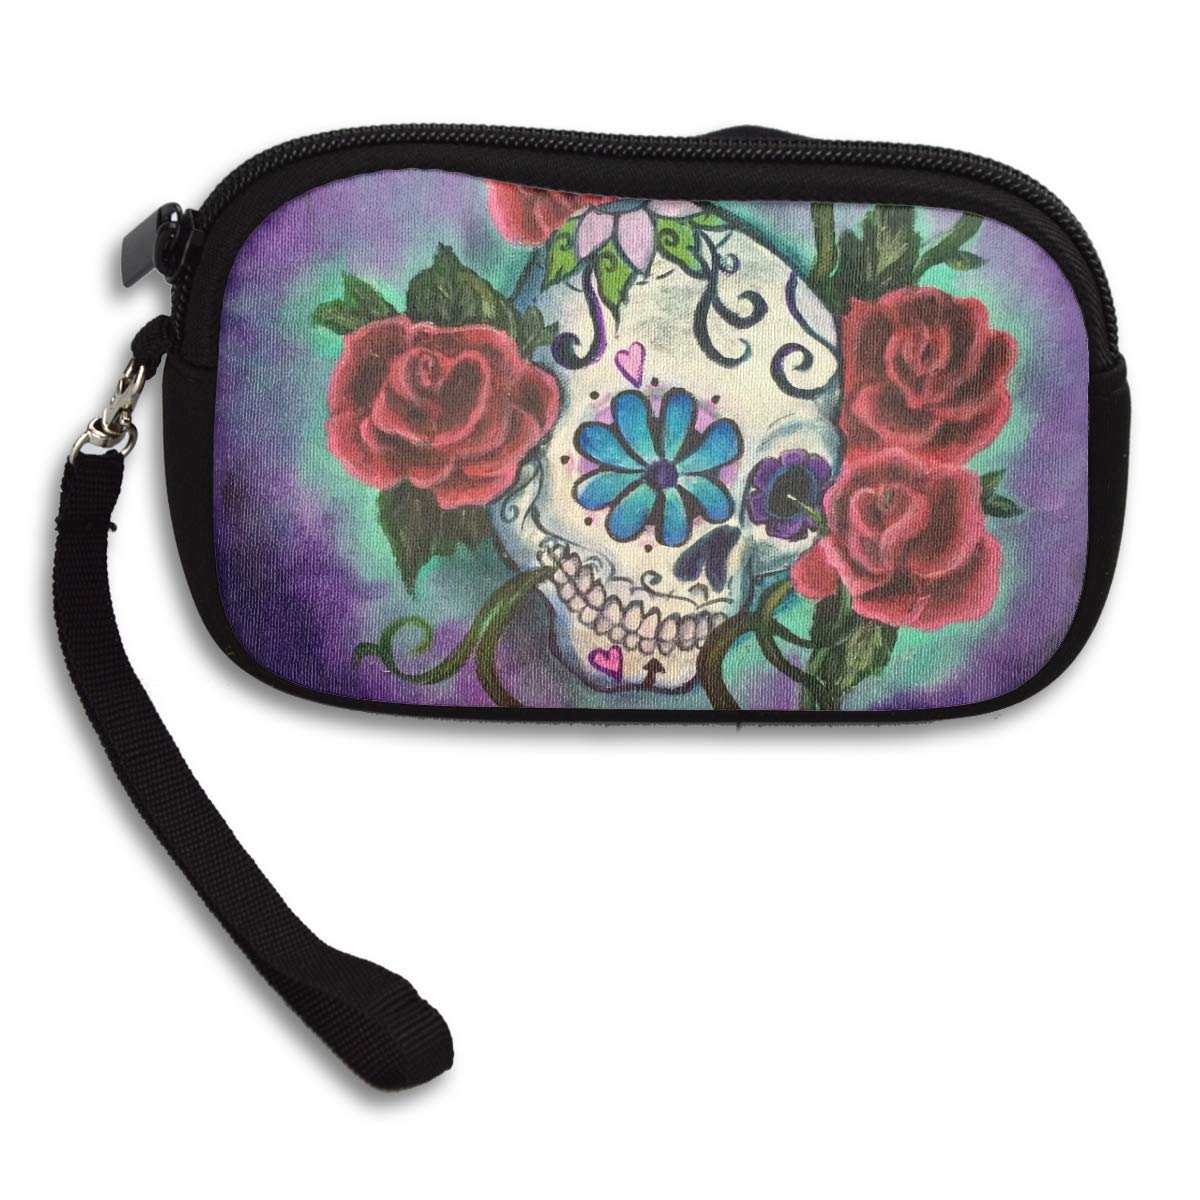 Coin Purse Sugar Skull Painting Coin Pouch With Zipper,Make Up Bag,Wallet Bag Change Pouch Key Holder